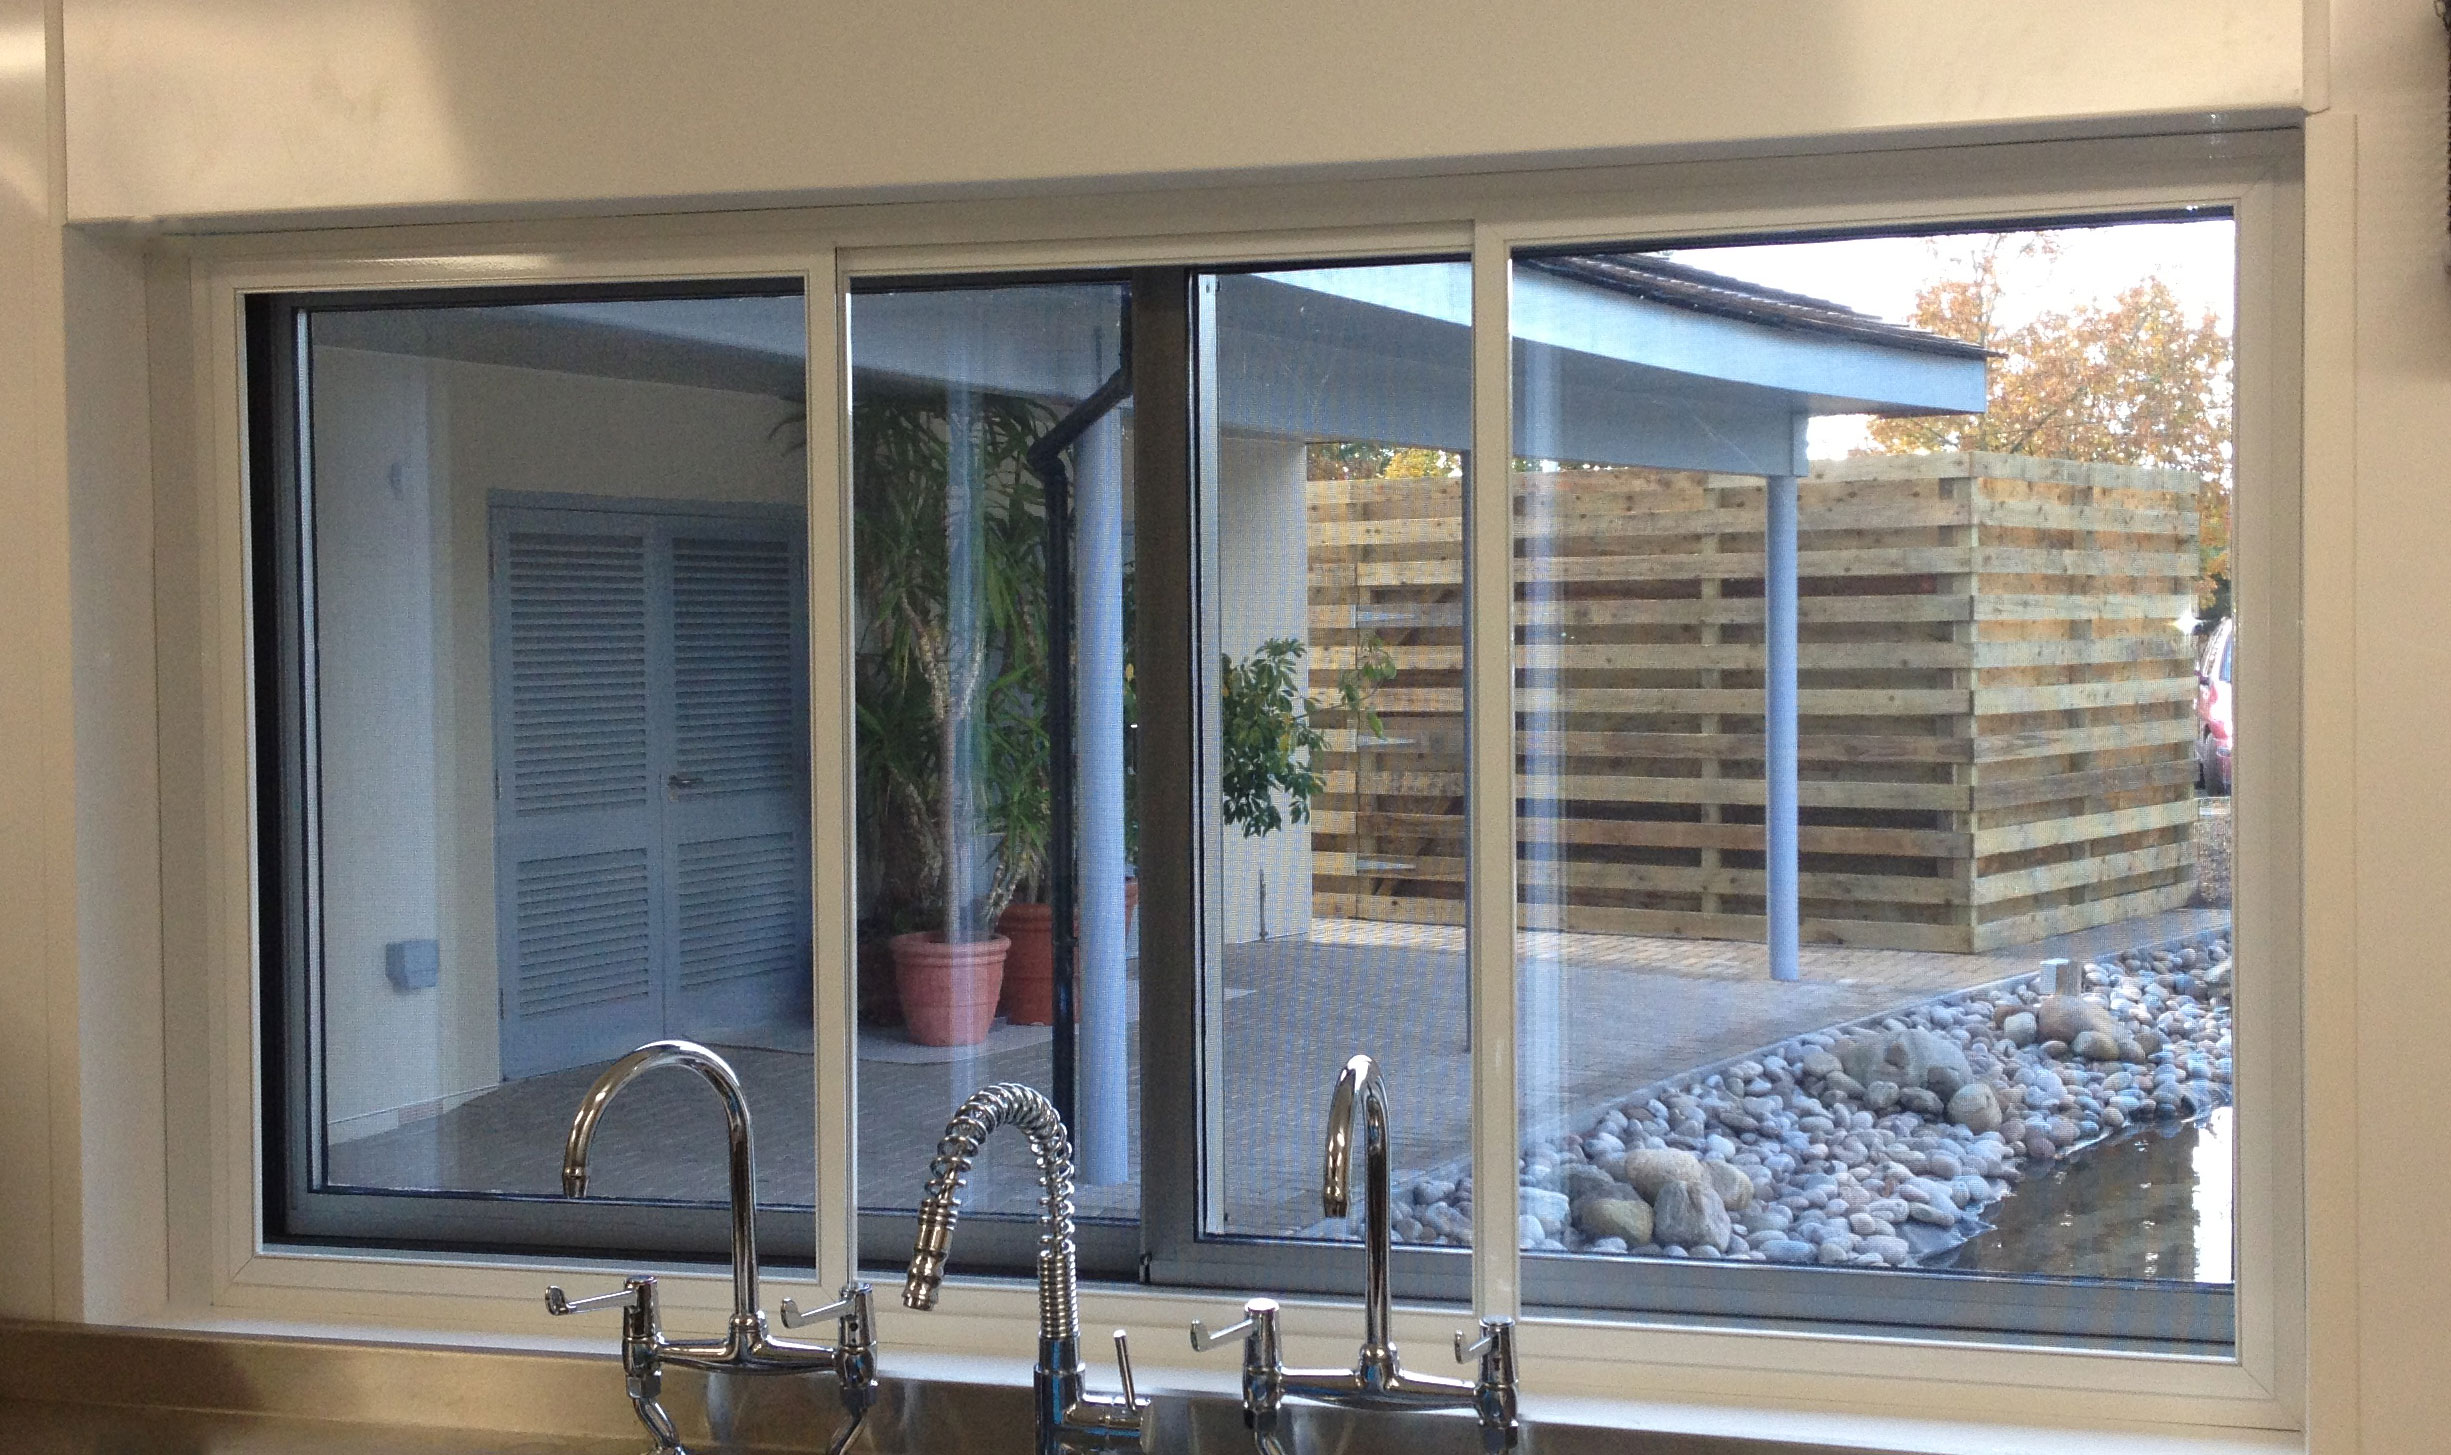 How Fly Screens Help With Keeping The Indoors Hygienic?